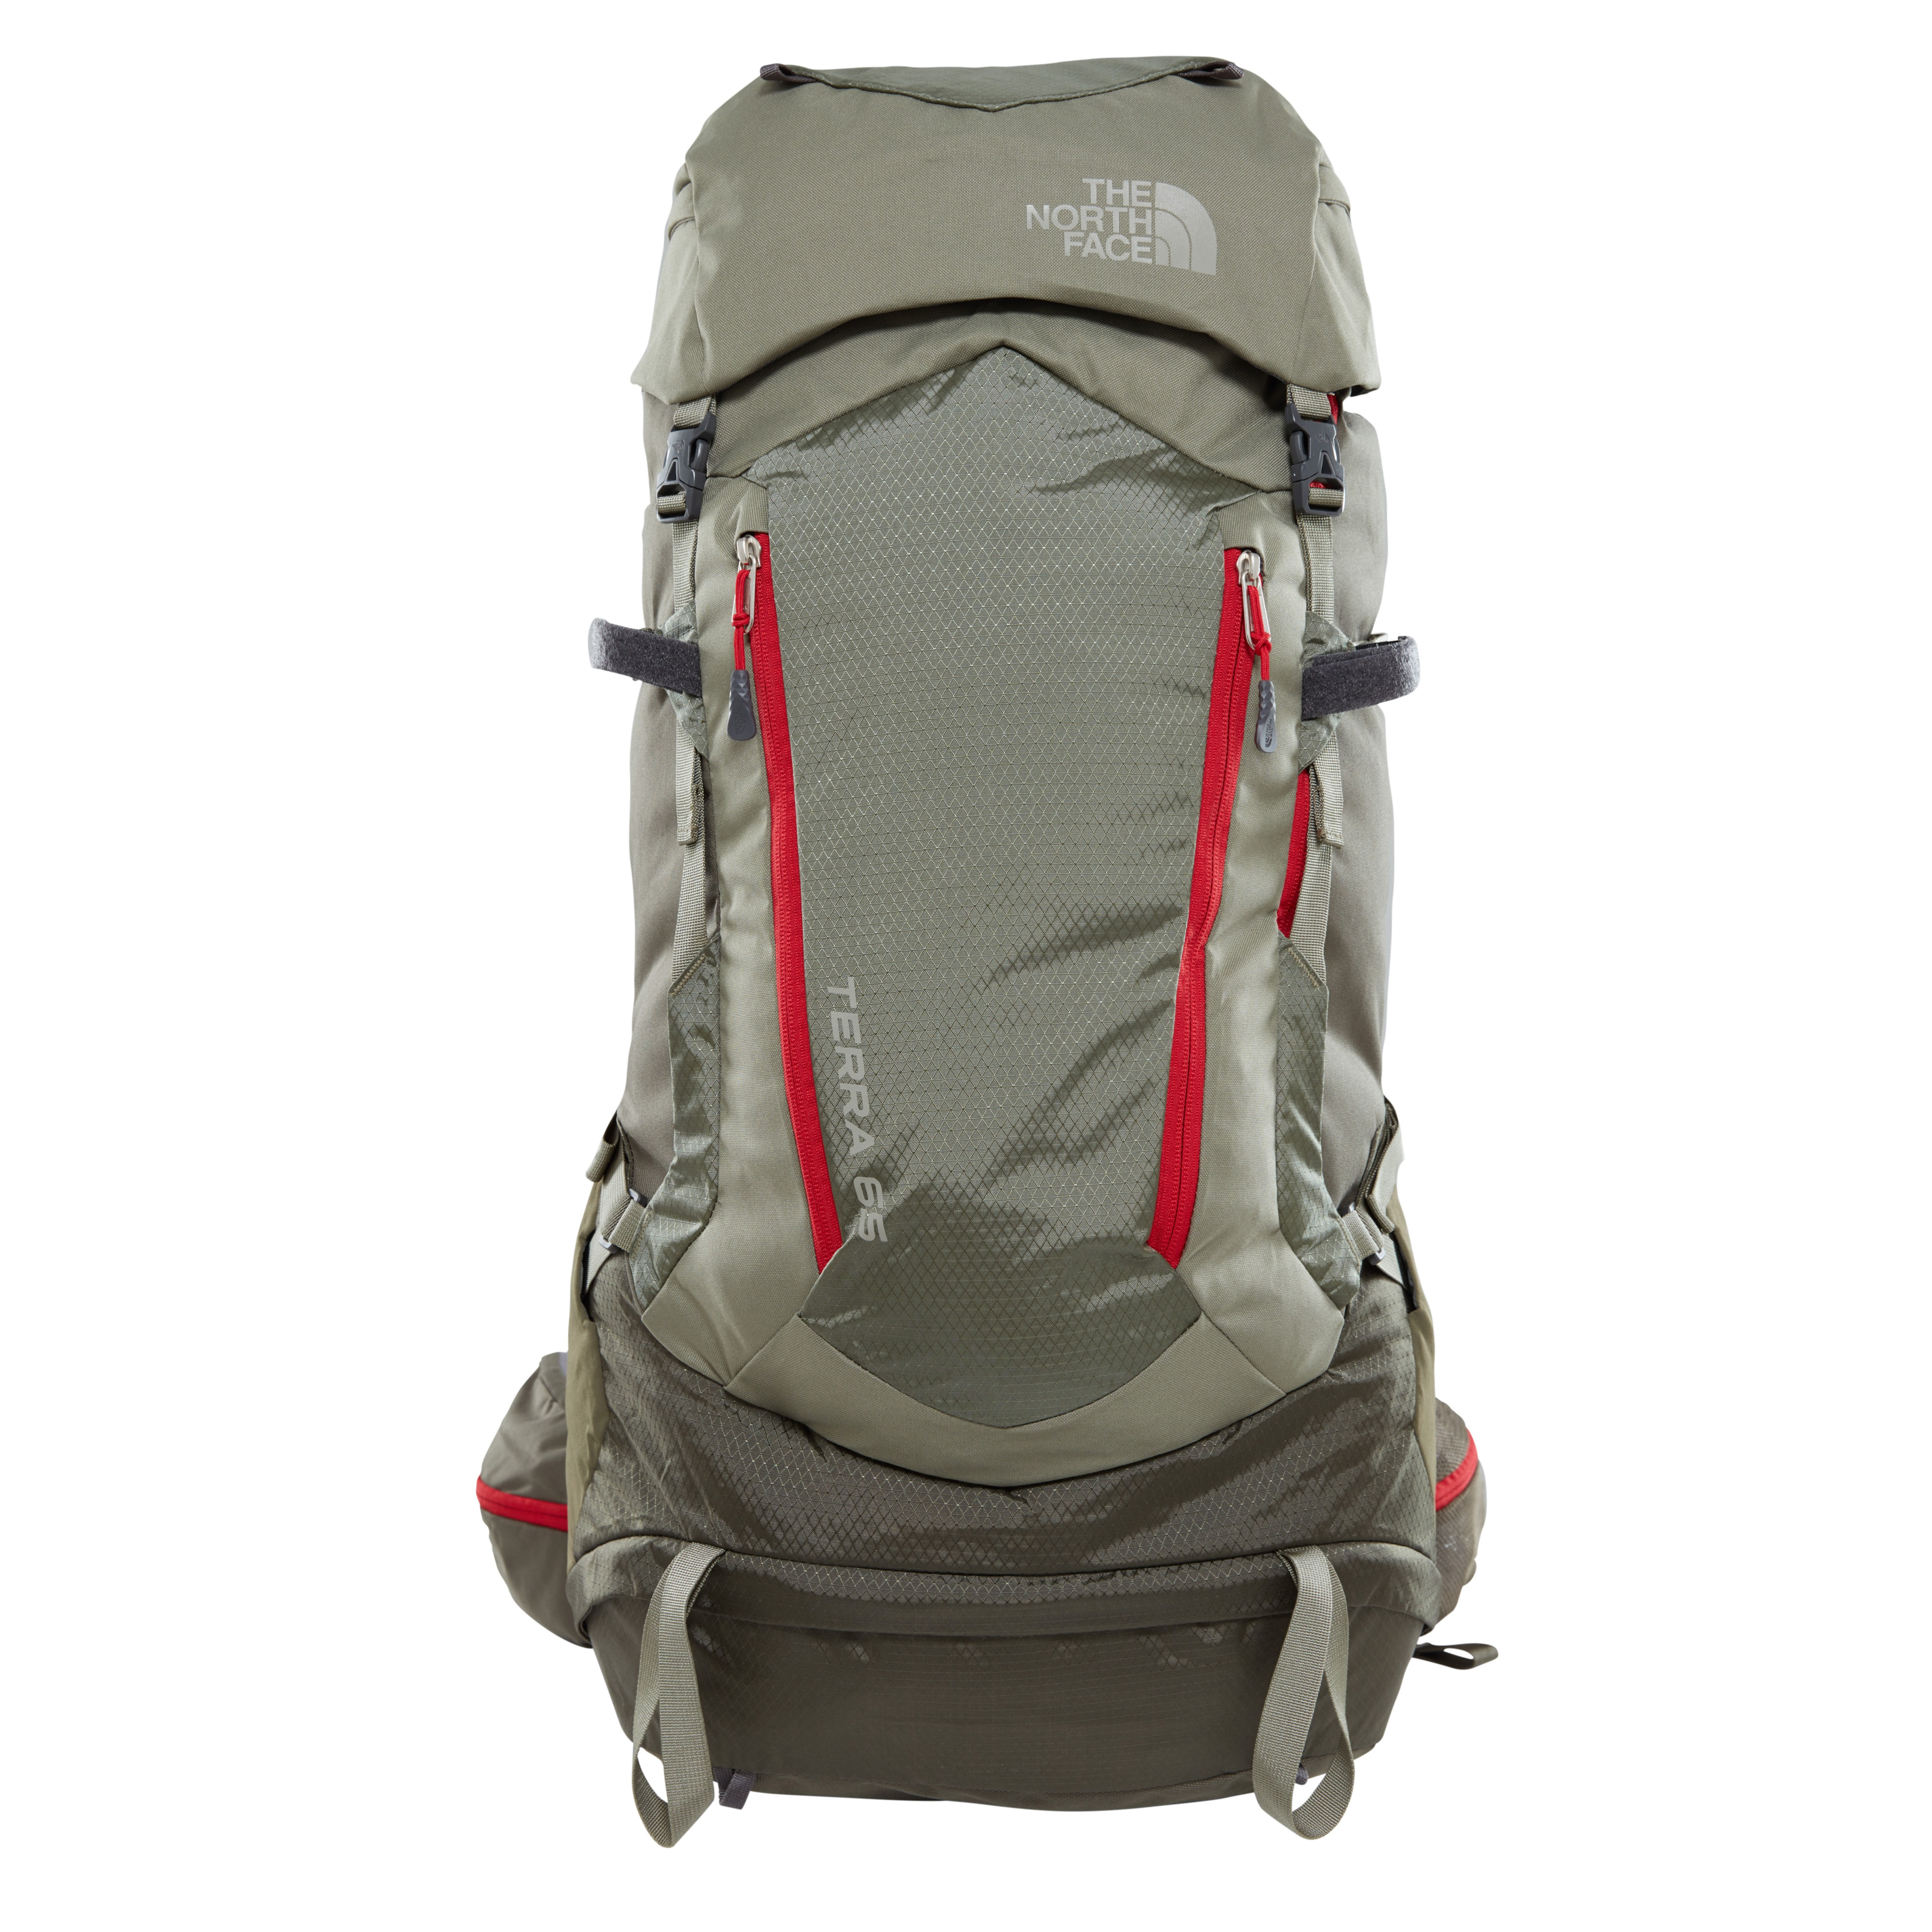 THE NORTH FACE TERRA 65 - gallery 0 bb83a5d323dc